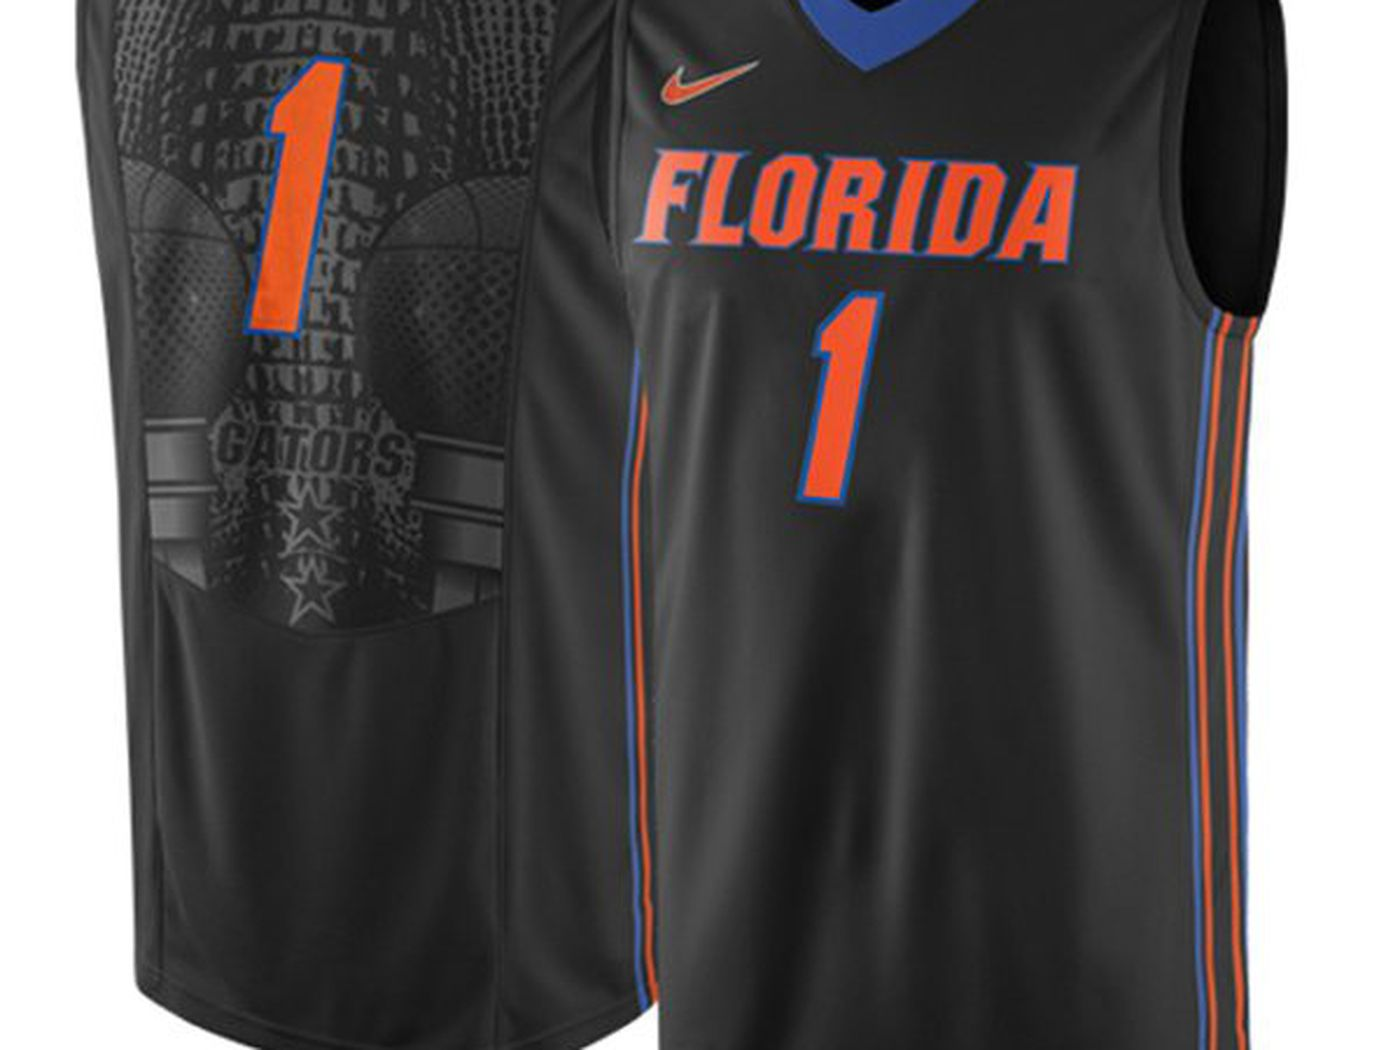 outlet store fb5c8 84034 Photos: Are Florida basketball's Gators going to wear black ...